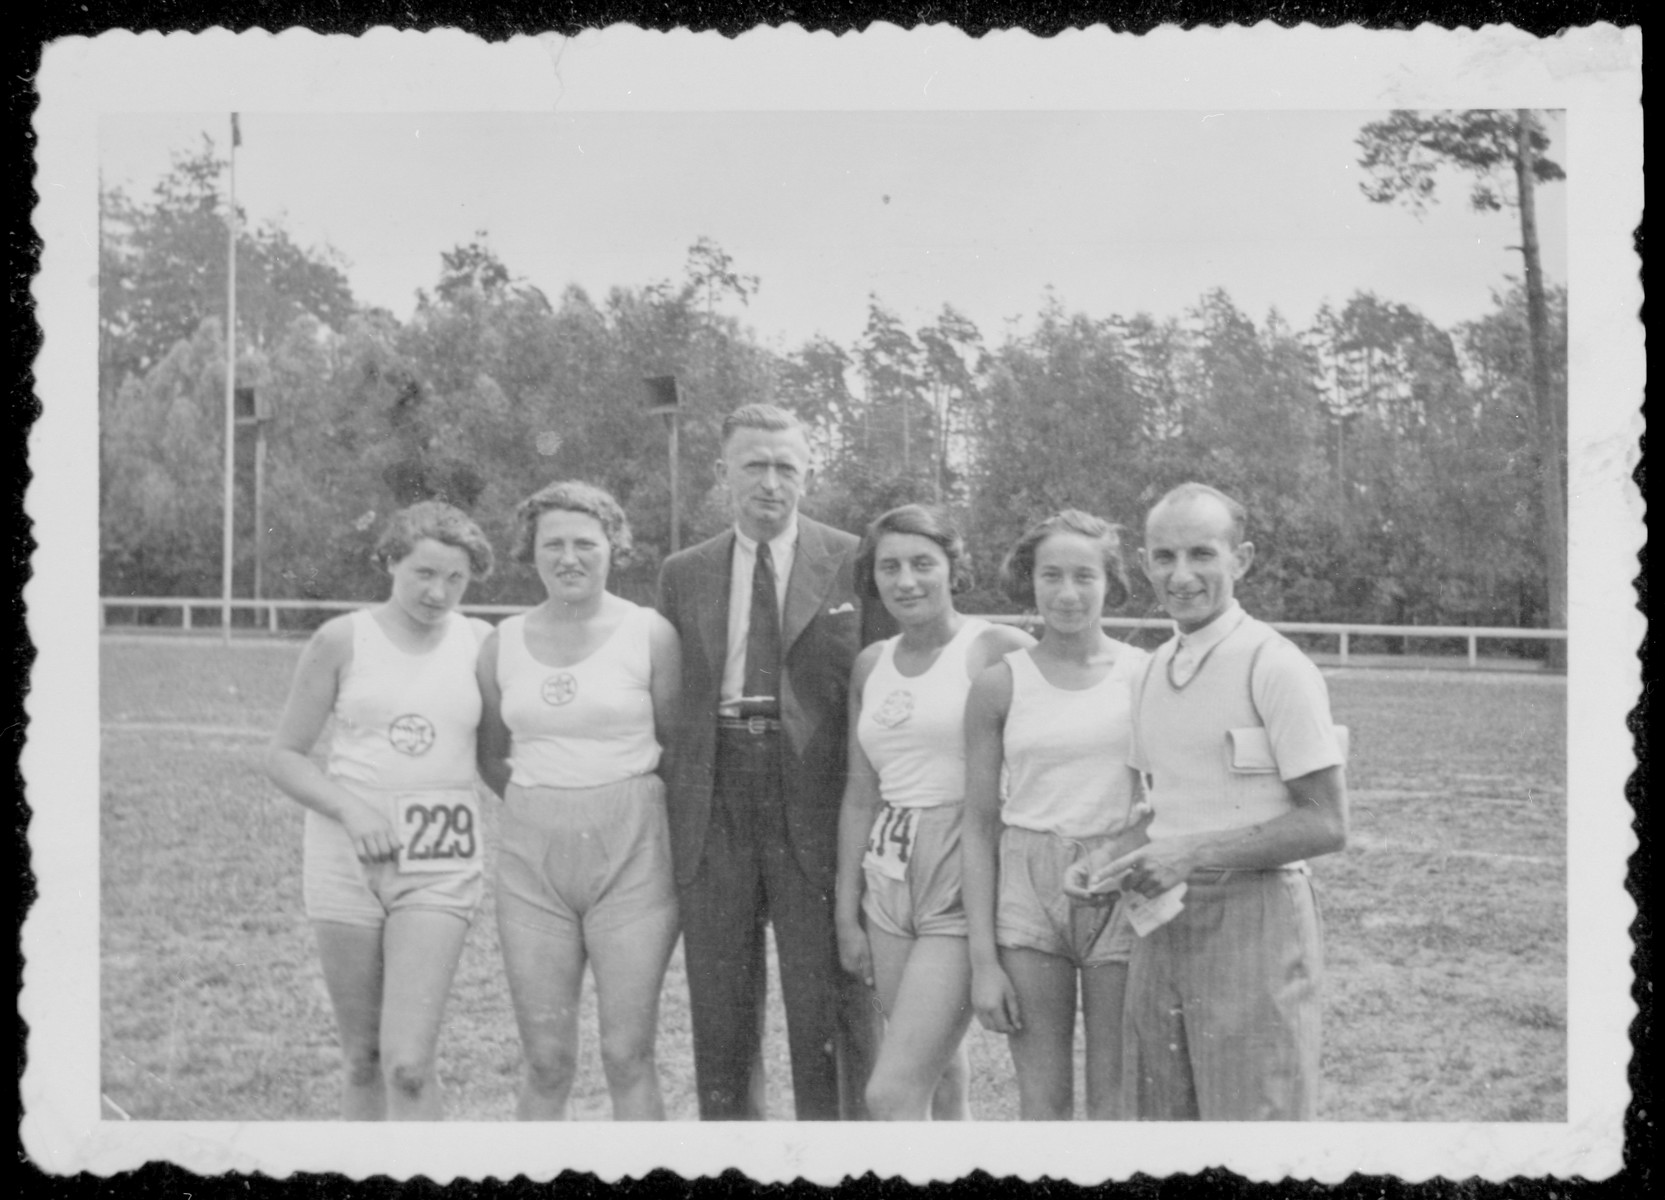 Group portrait of members of the women's Maccabi team of Bialystok.  Liza Grochowska is pictured third from the right.